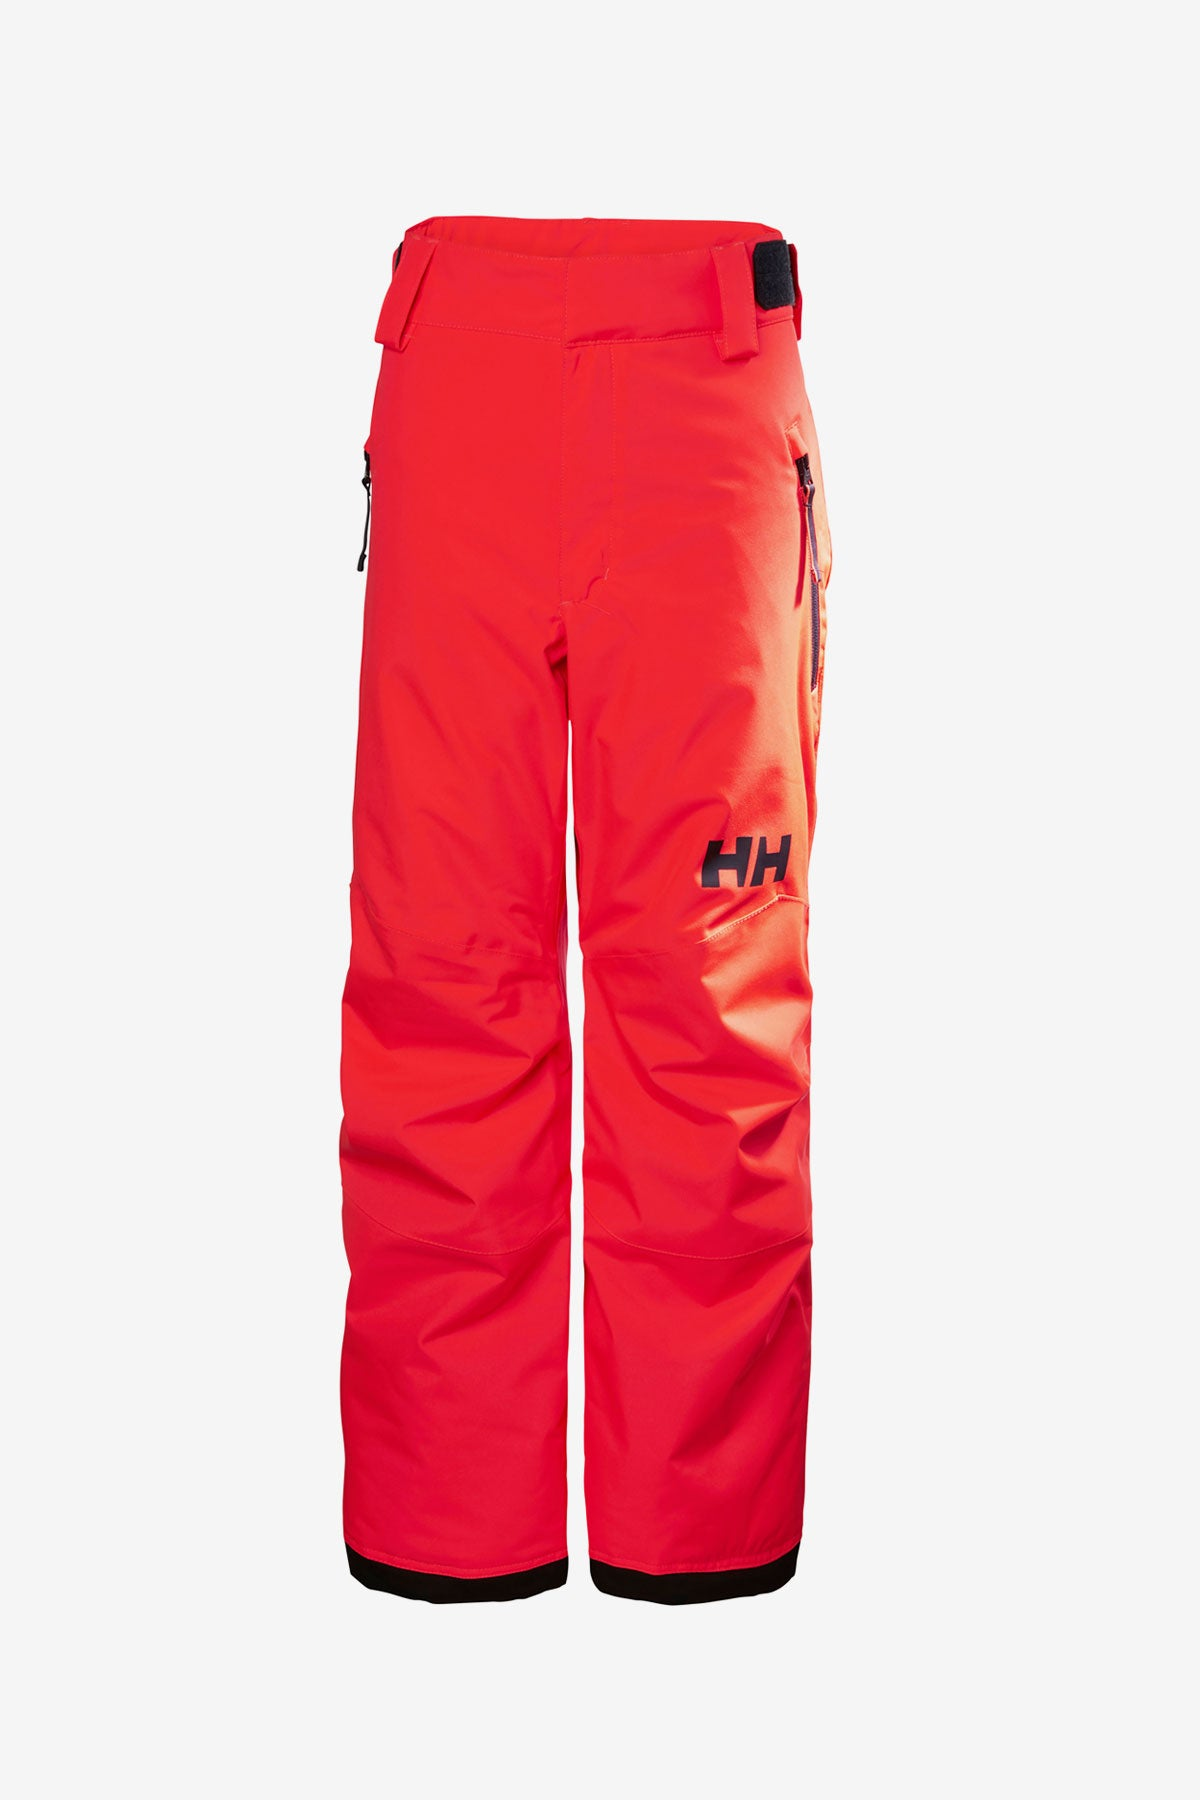 Helly Hansen Jr Legendary Pant - Neon Coral Orange